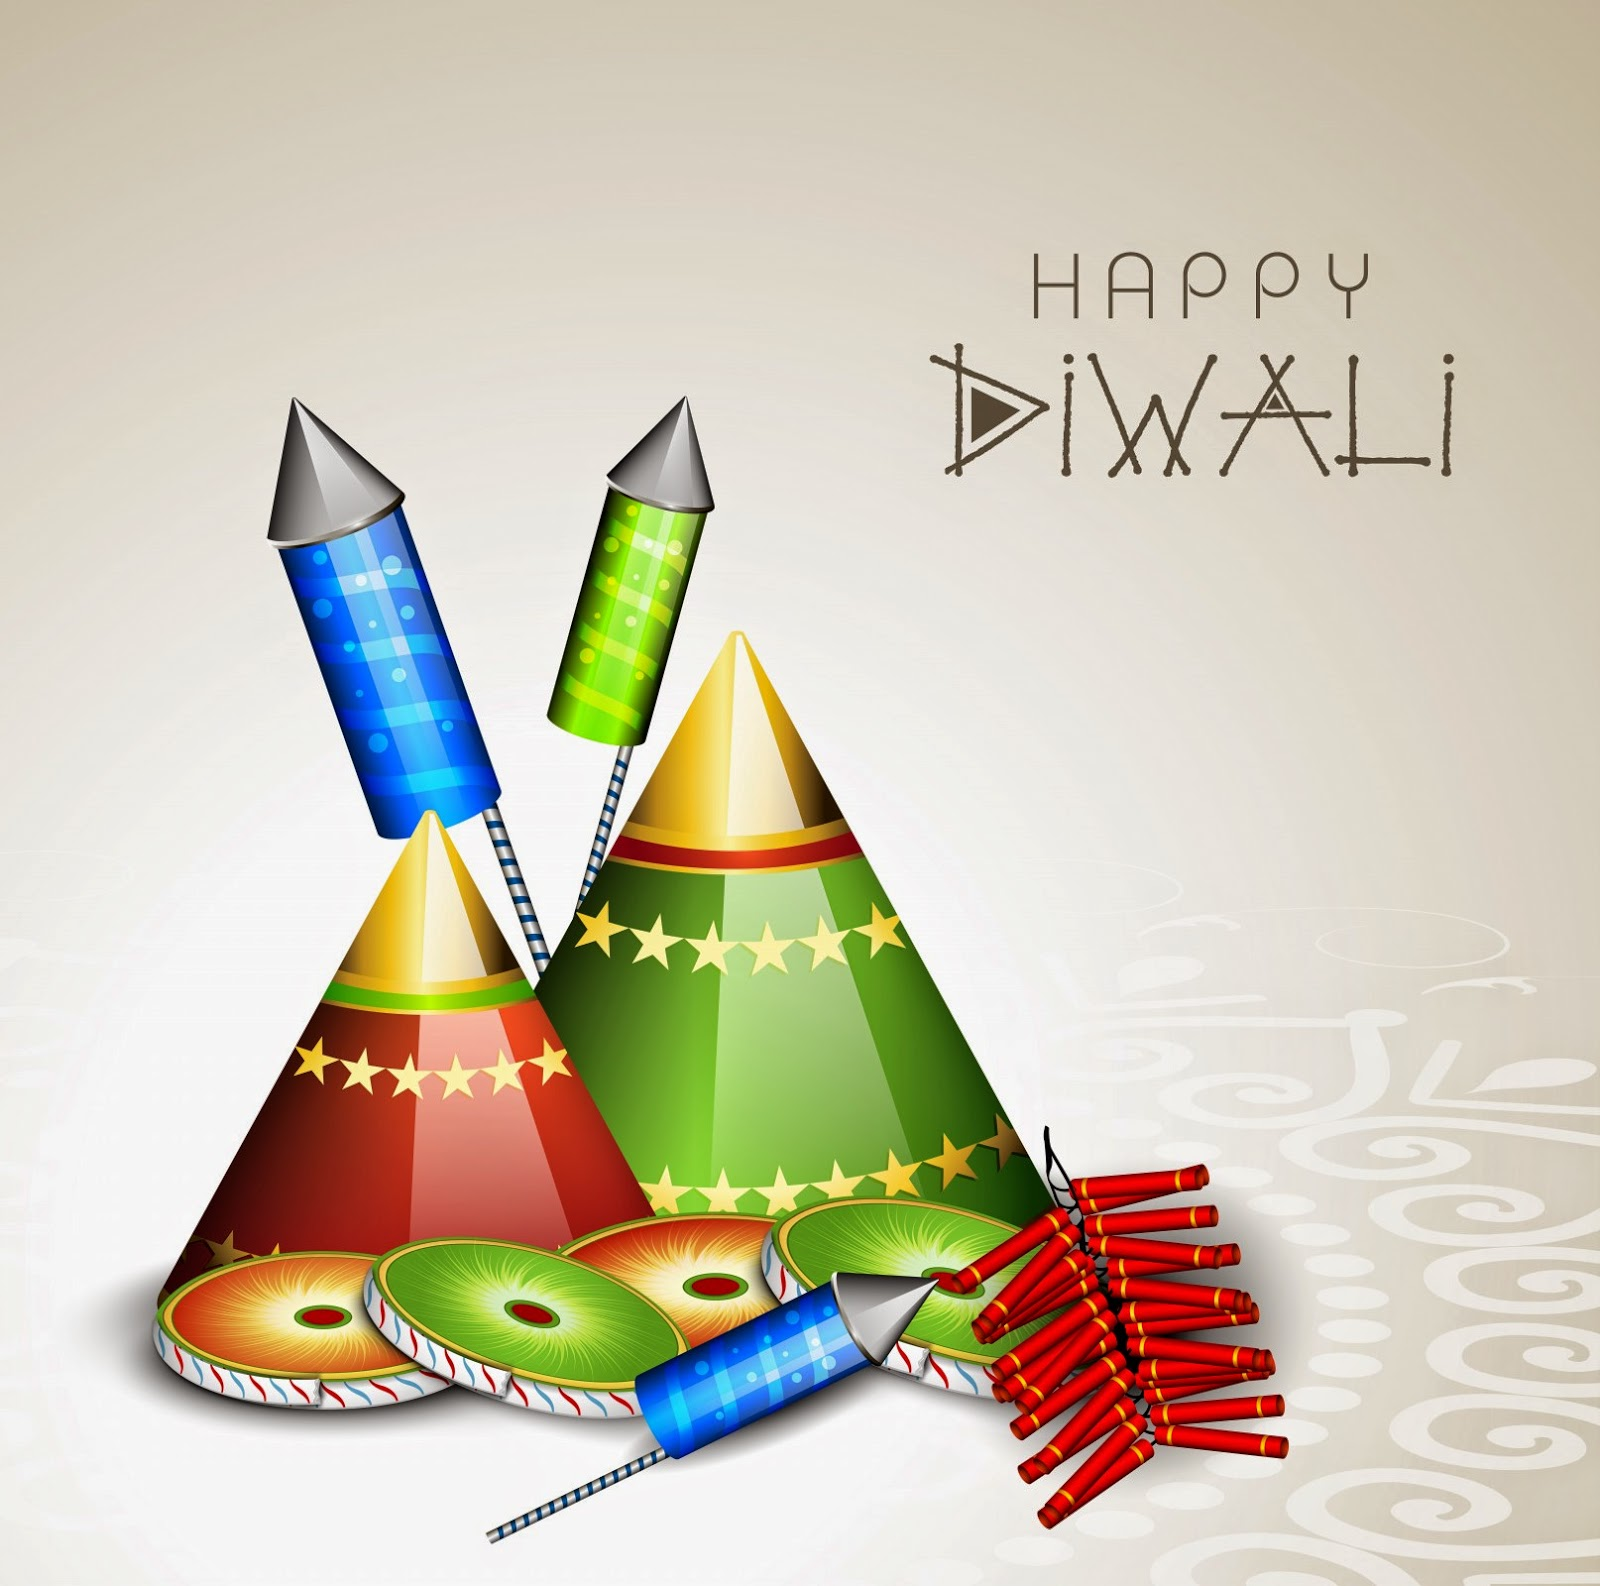 Happy Diwali with fireworks and Cracker (Wallpaper groups)